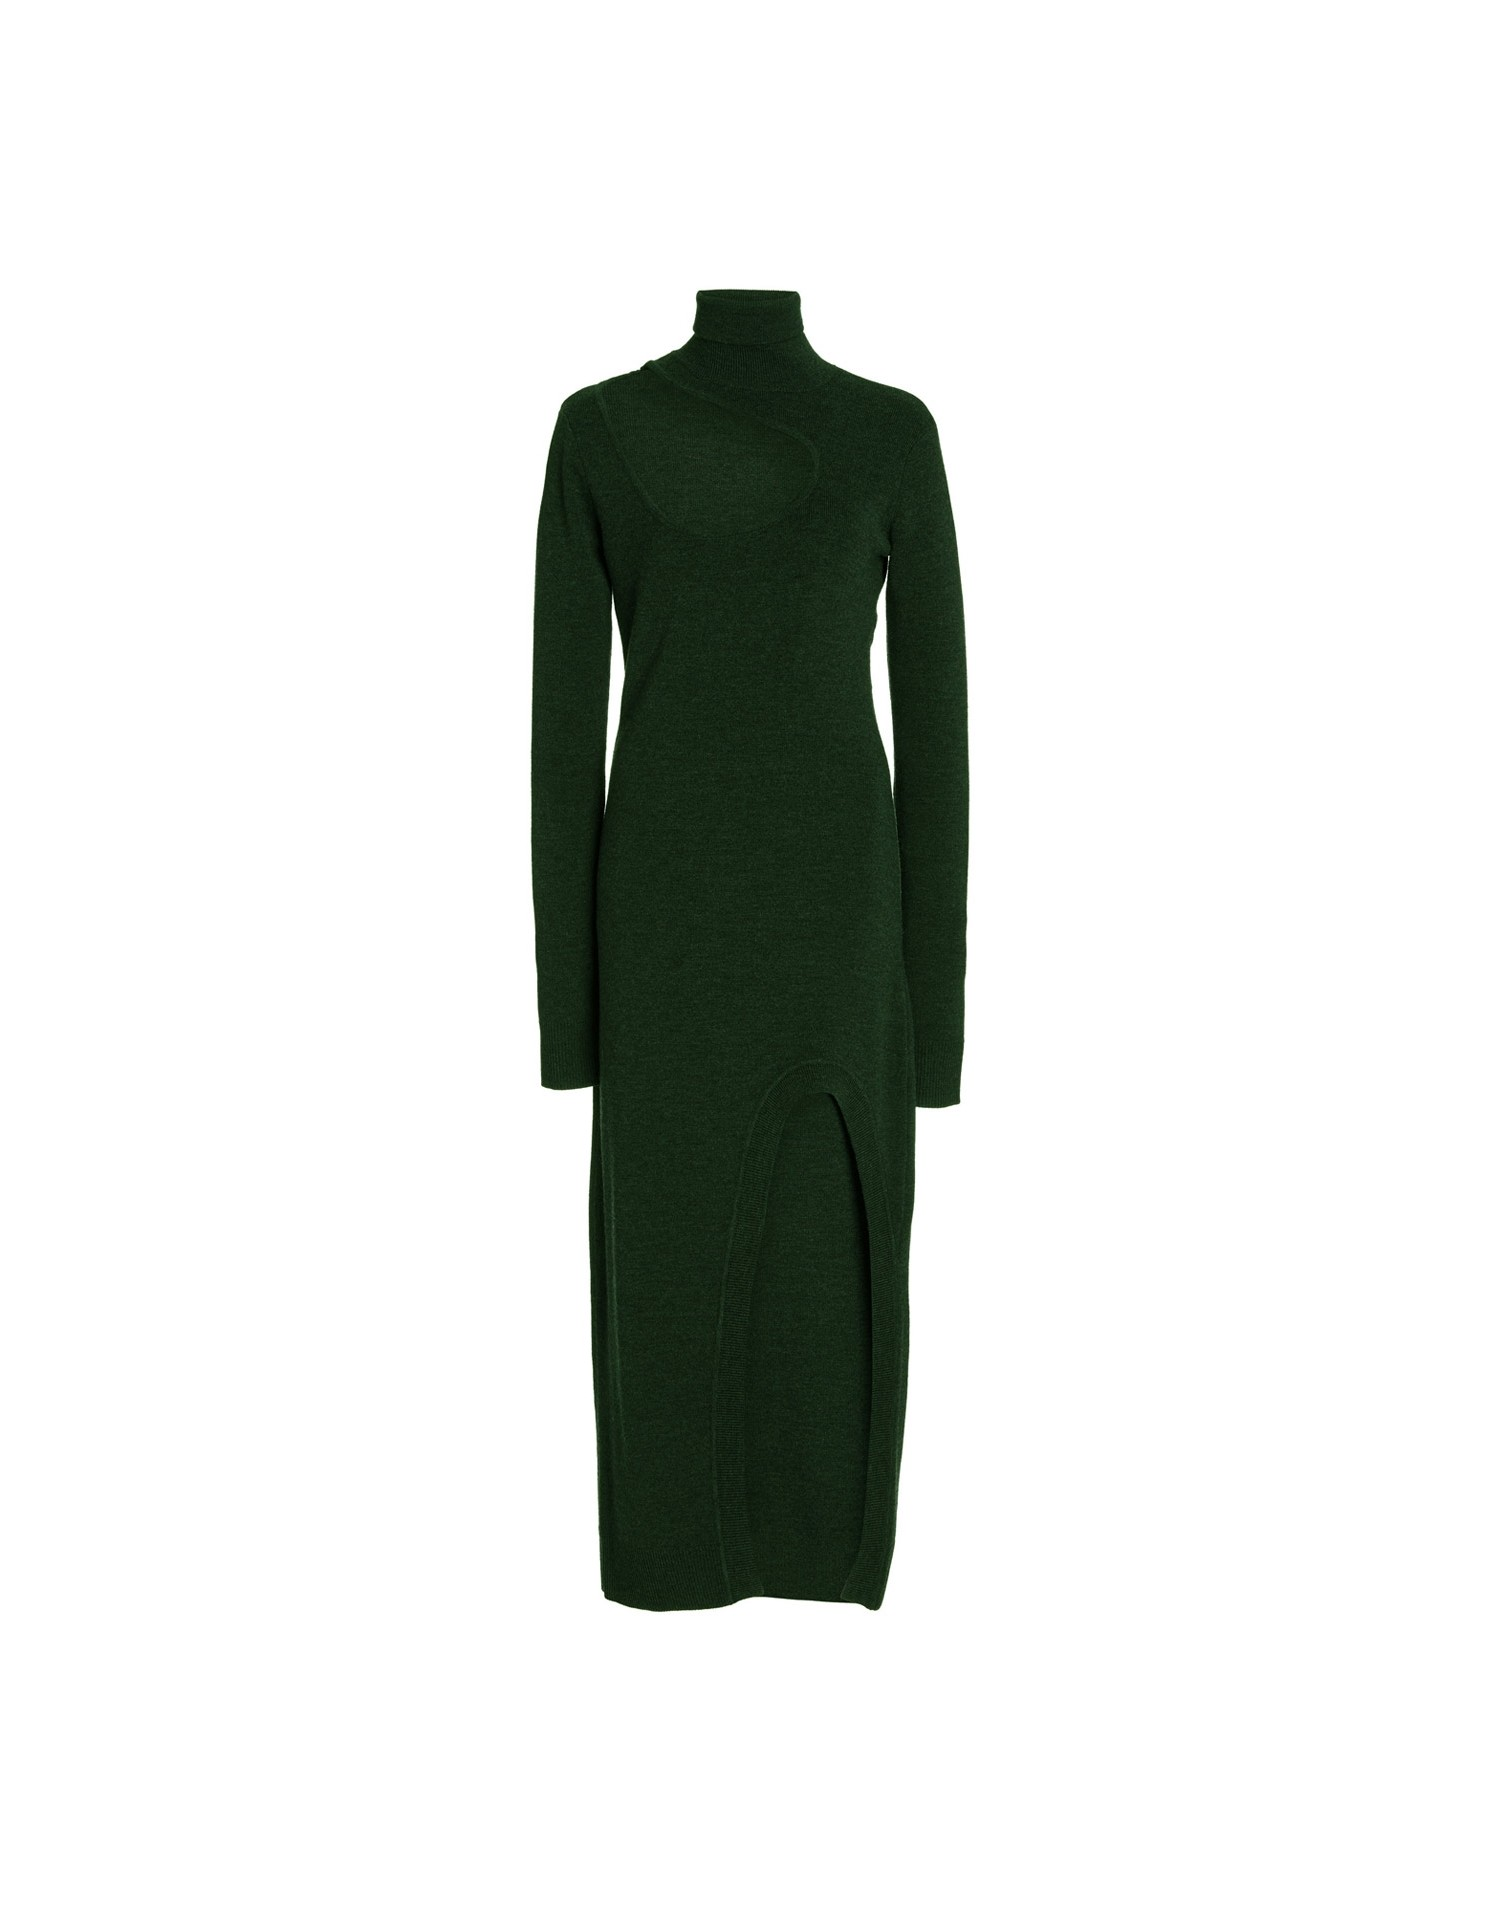 MONSE Kidney Bean Cut Out Knit Dress in Forest Green Flat Front View